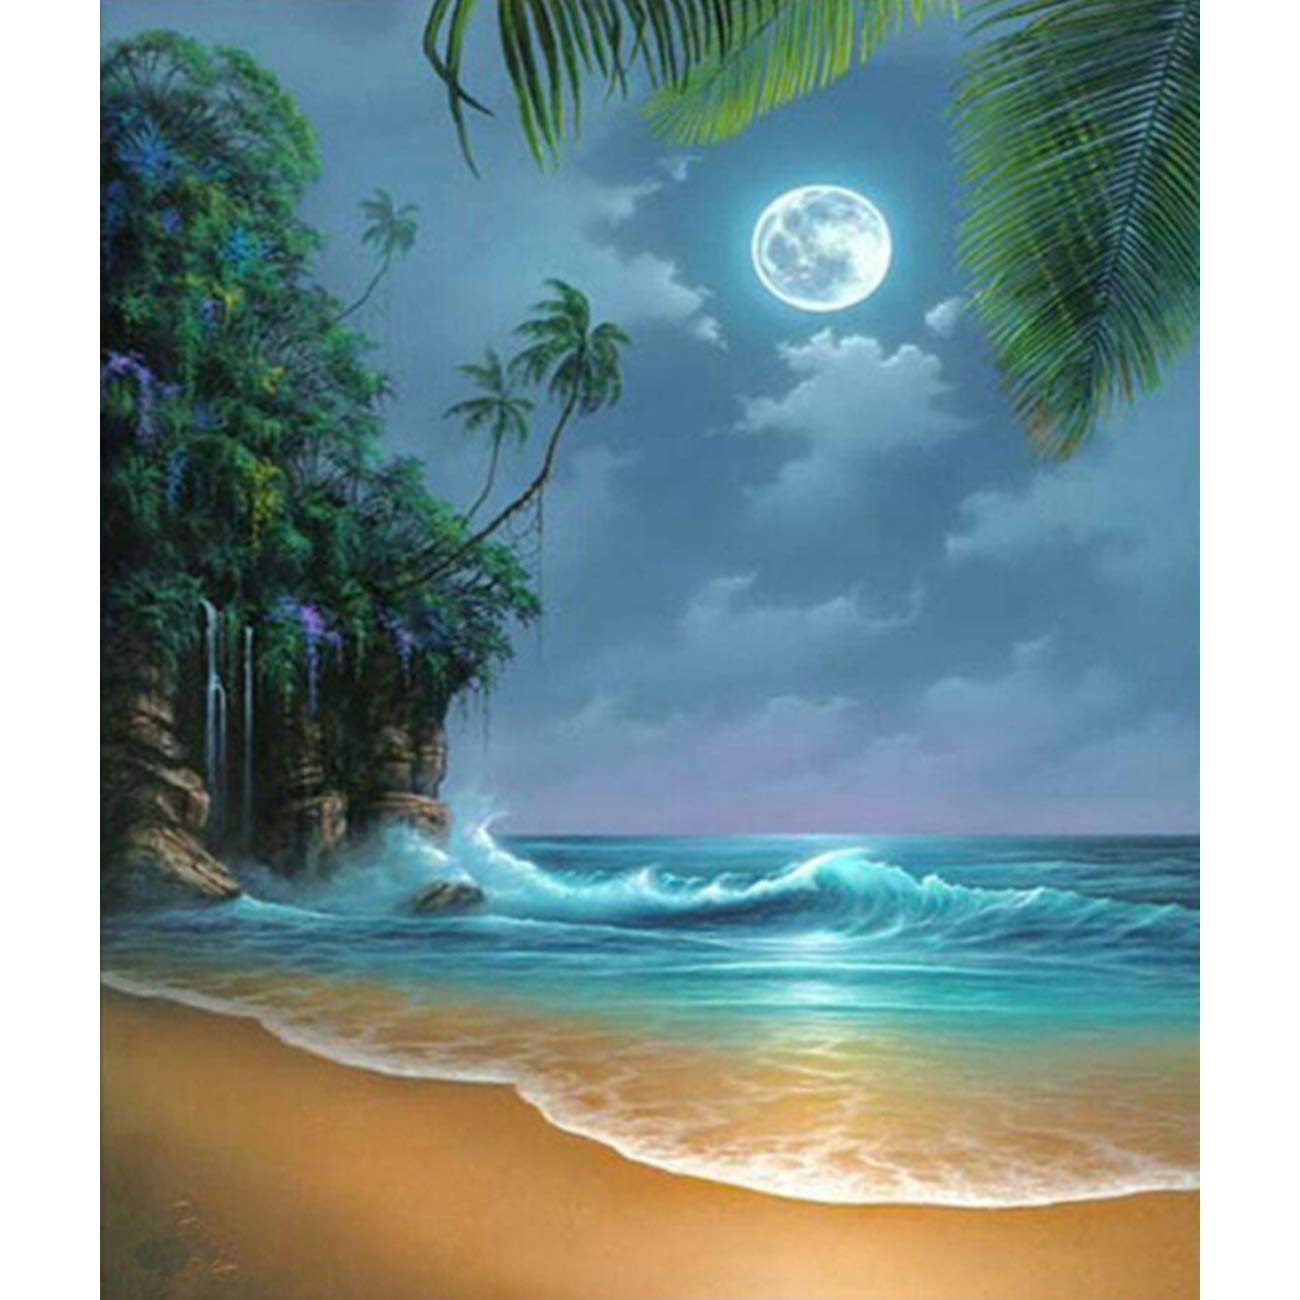 DIY 5D Diamond Painting Kit, Full Diamond Seaside Moon Beach Embroidery Rhinestone Cross Stitch Arts Craft Supply for Home Wall Decor